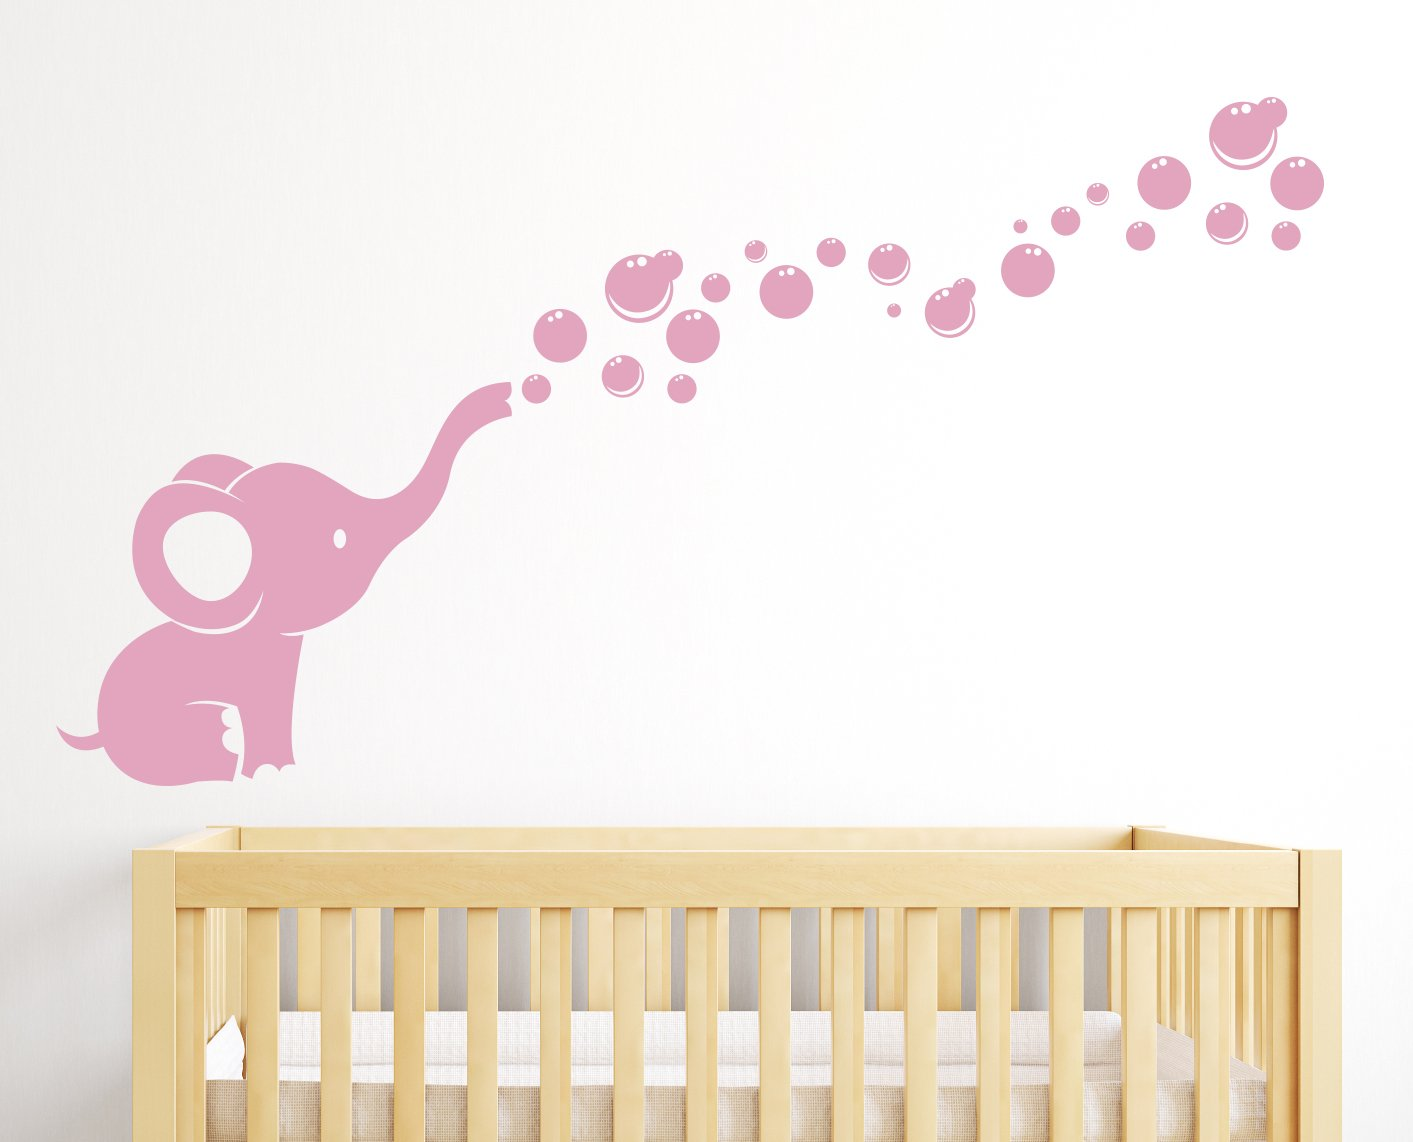 Amazoncom Elephant Bubbles Nursery Wall Decal Room Decor White - Baby room decals